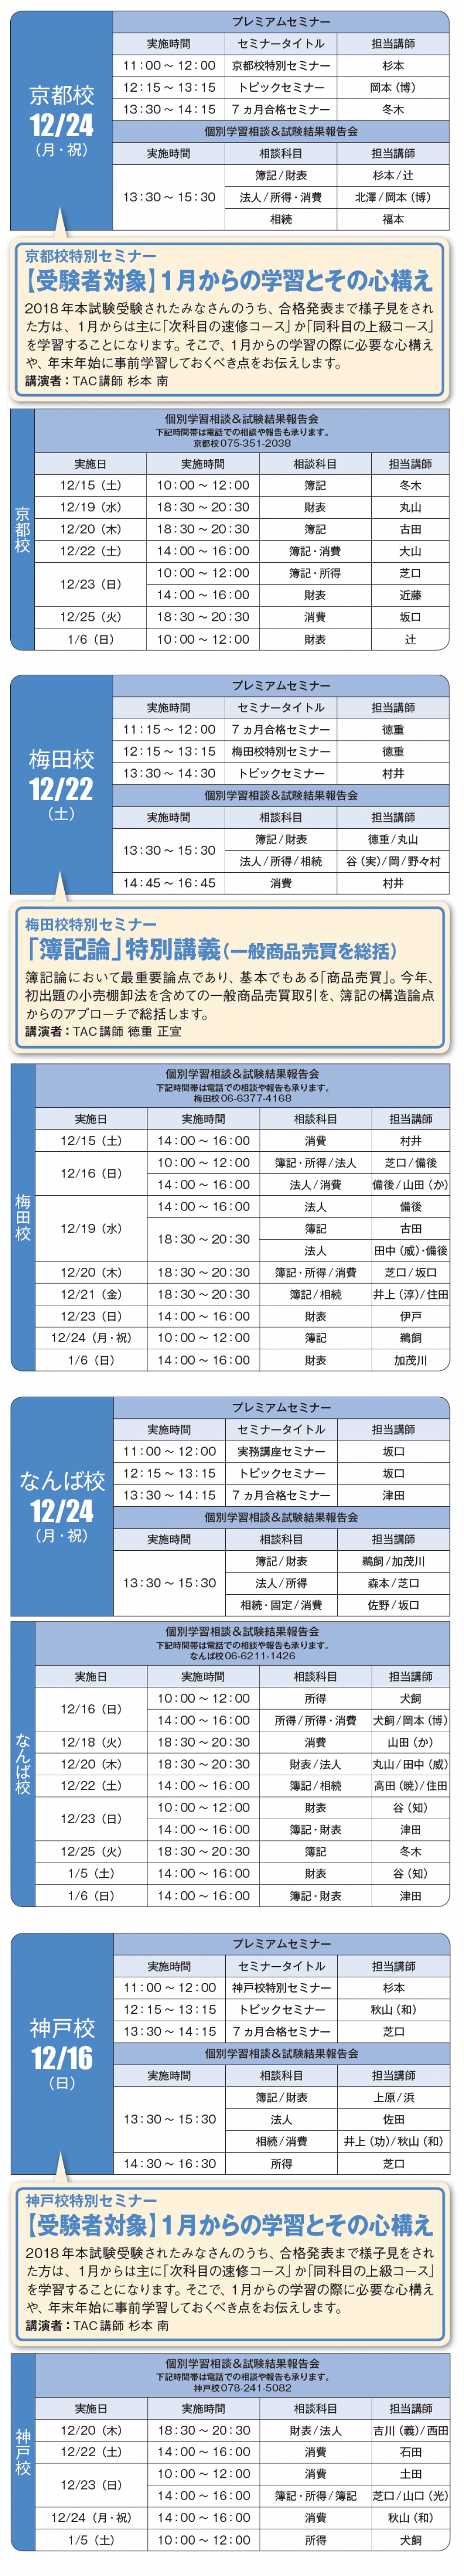 201812_zeiri_openfes_09.png